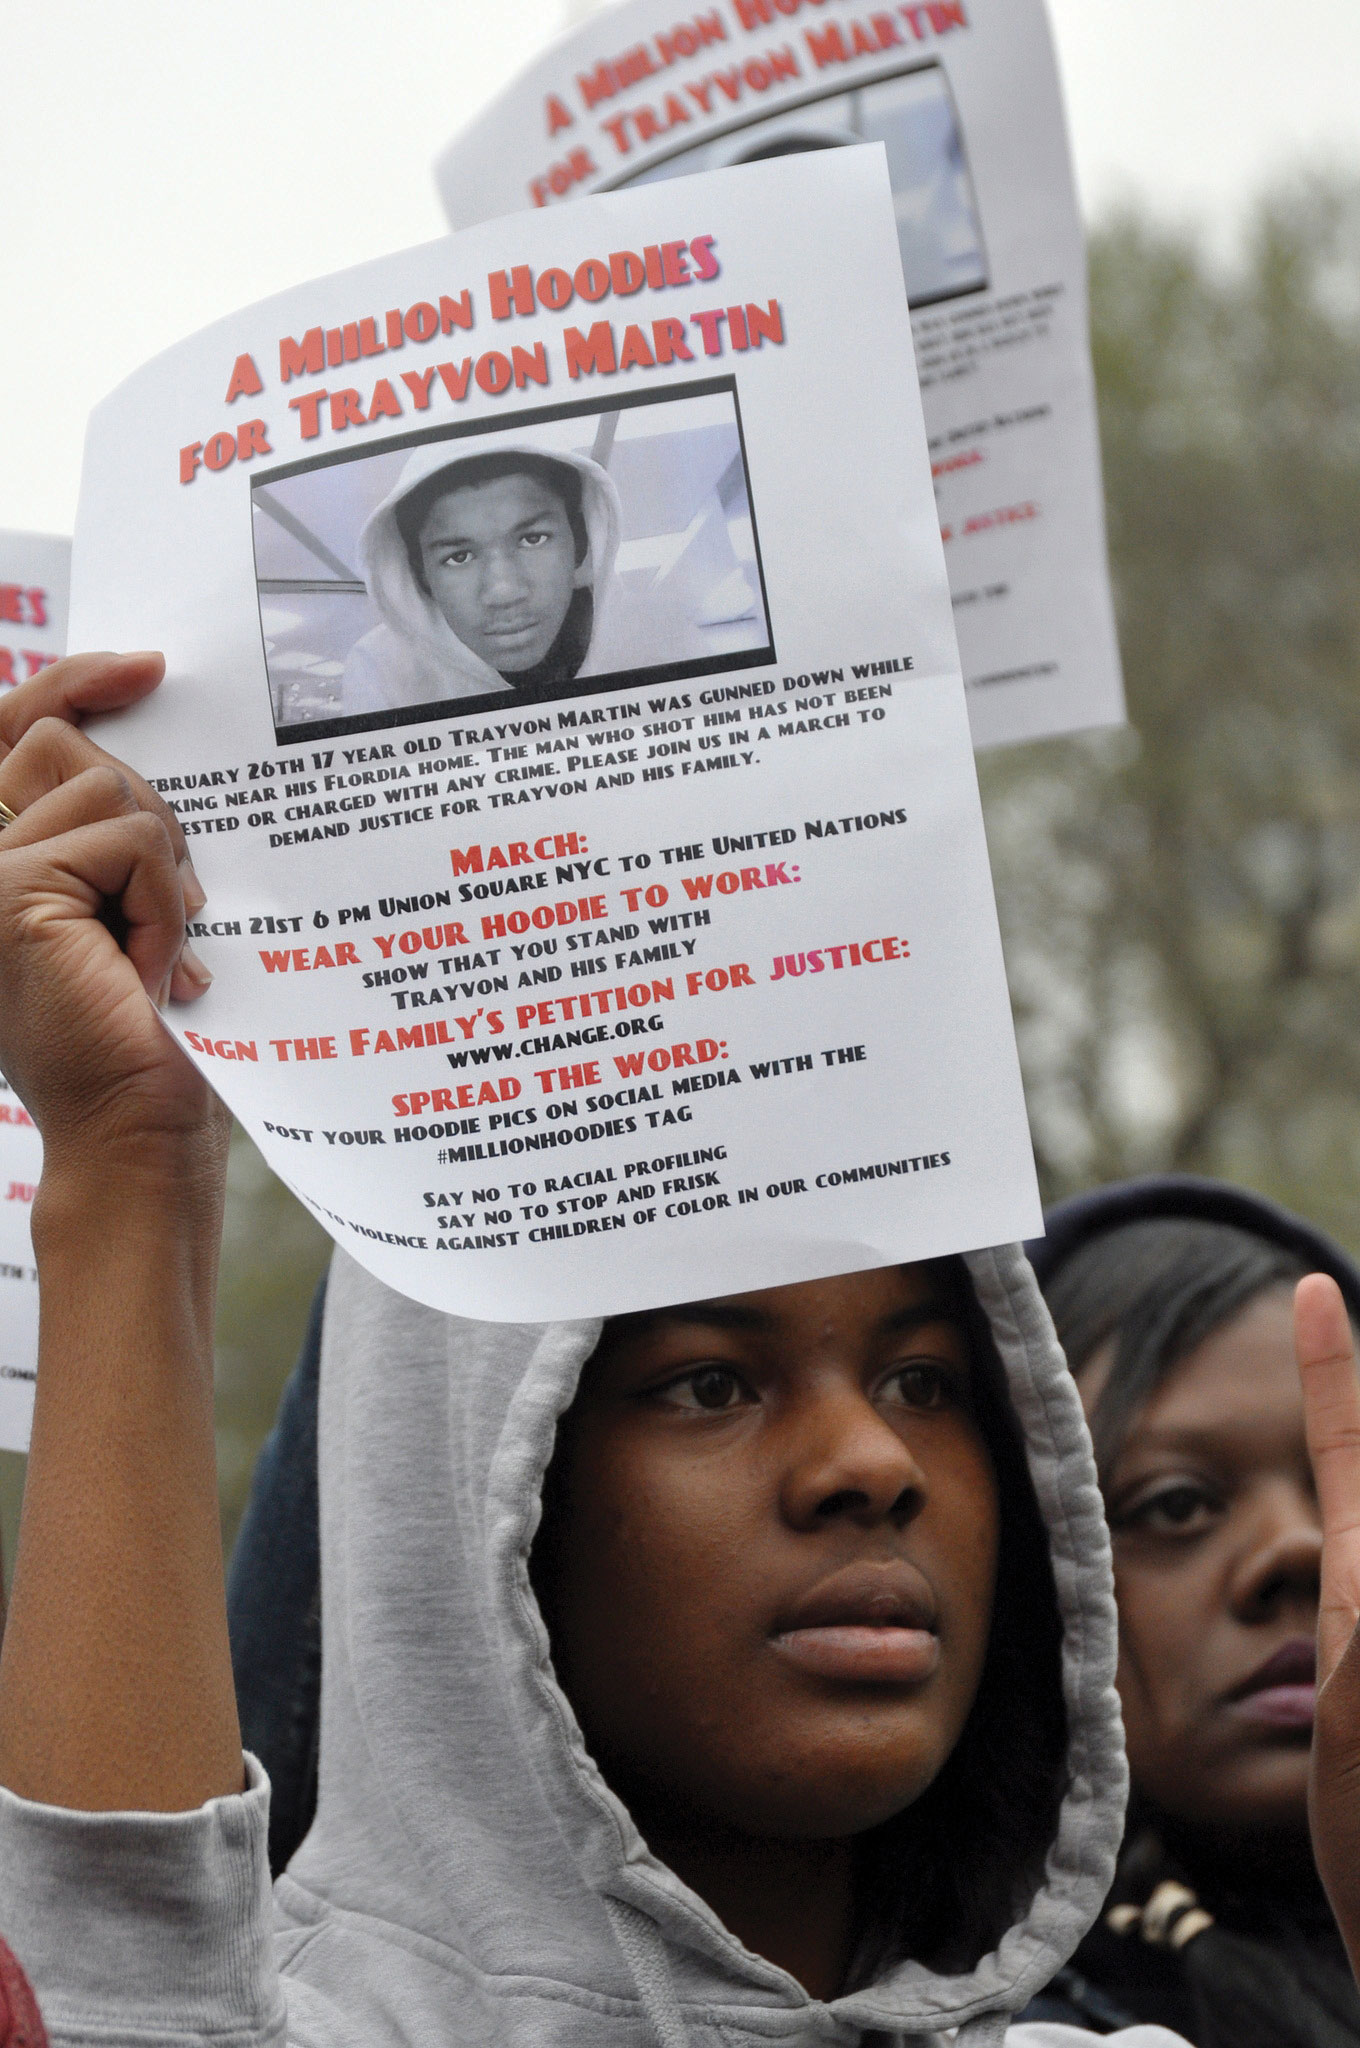 A Million Hoodies for Trayvon Martin poster